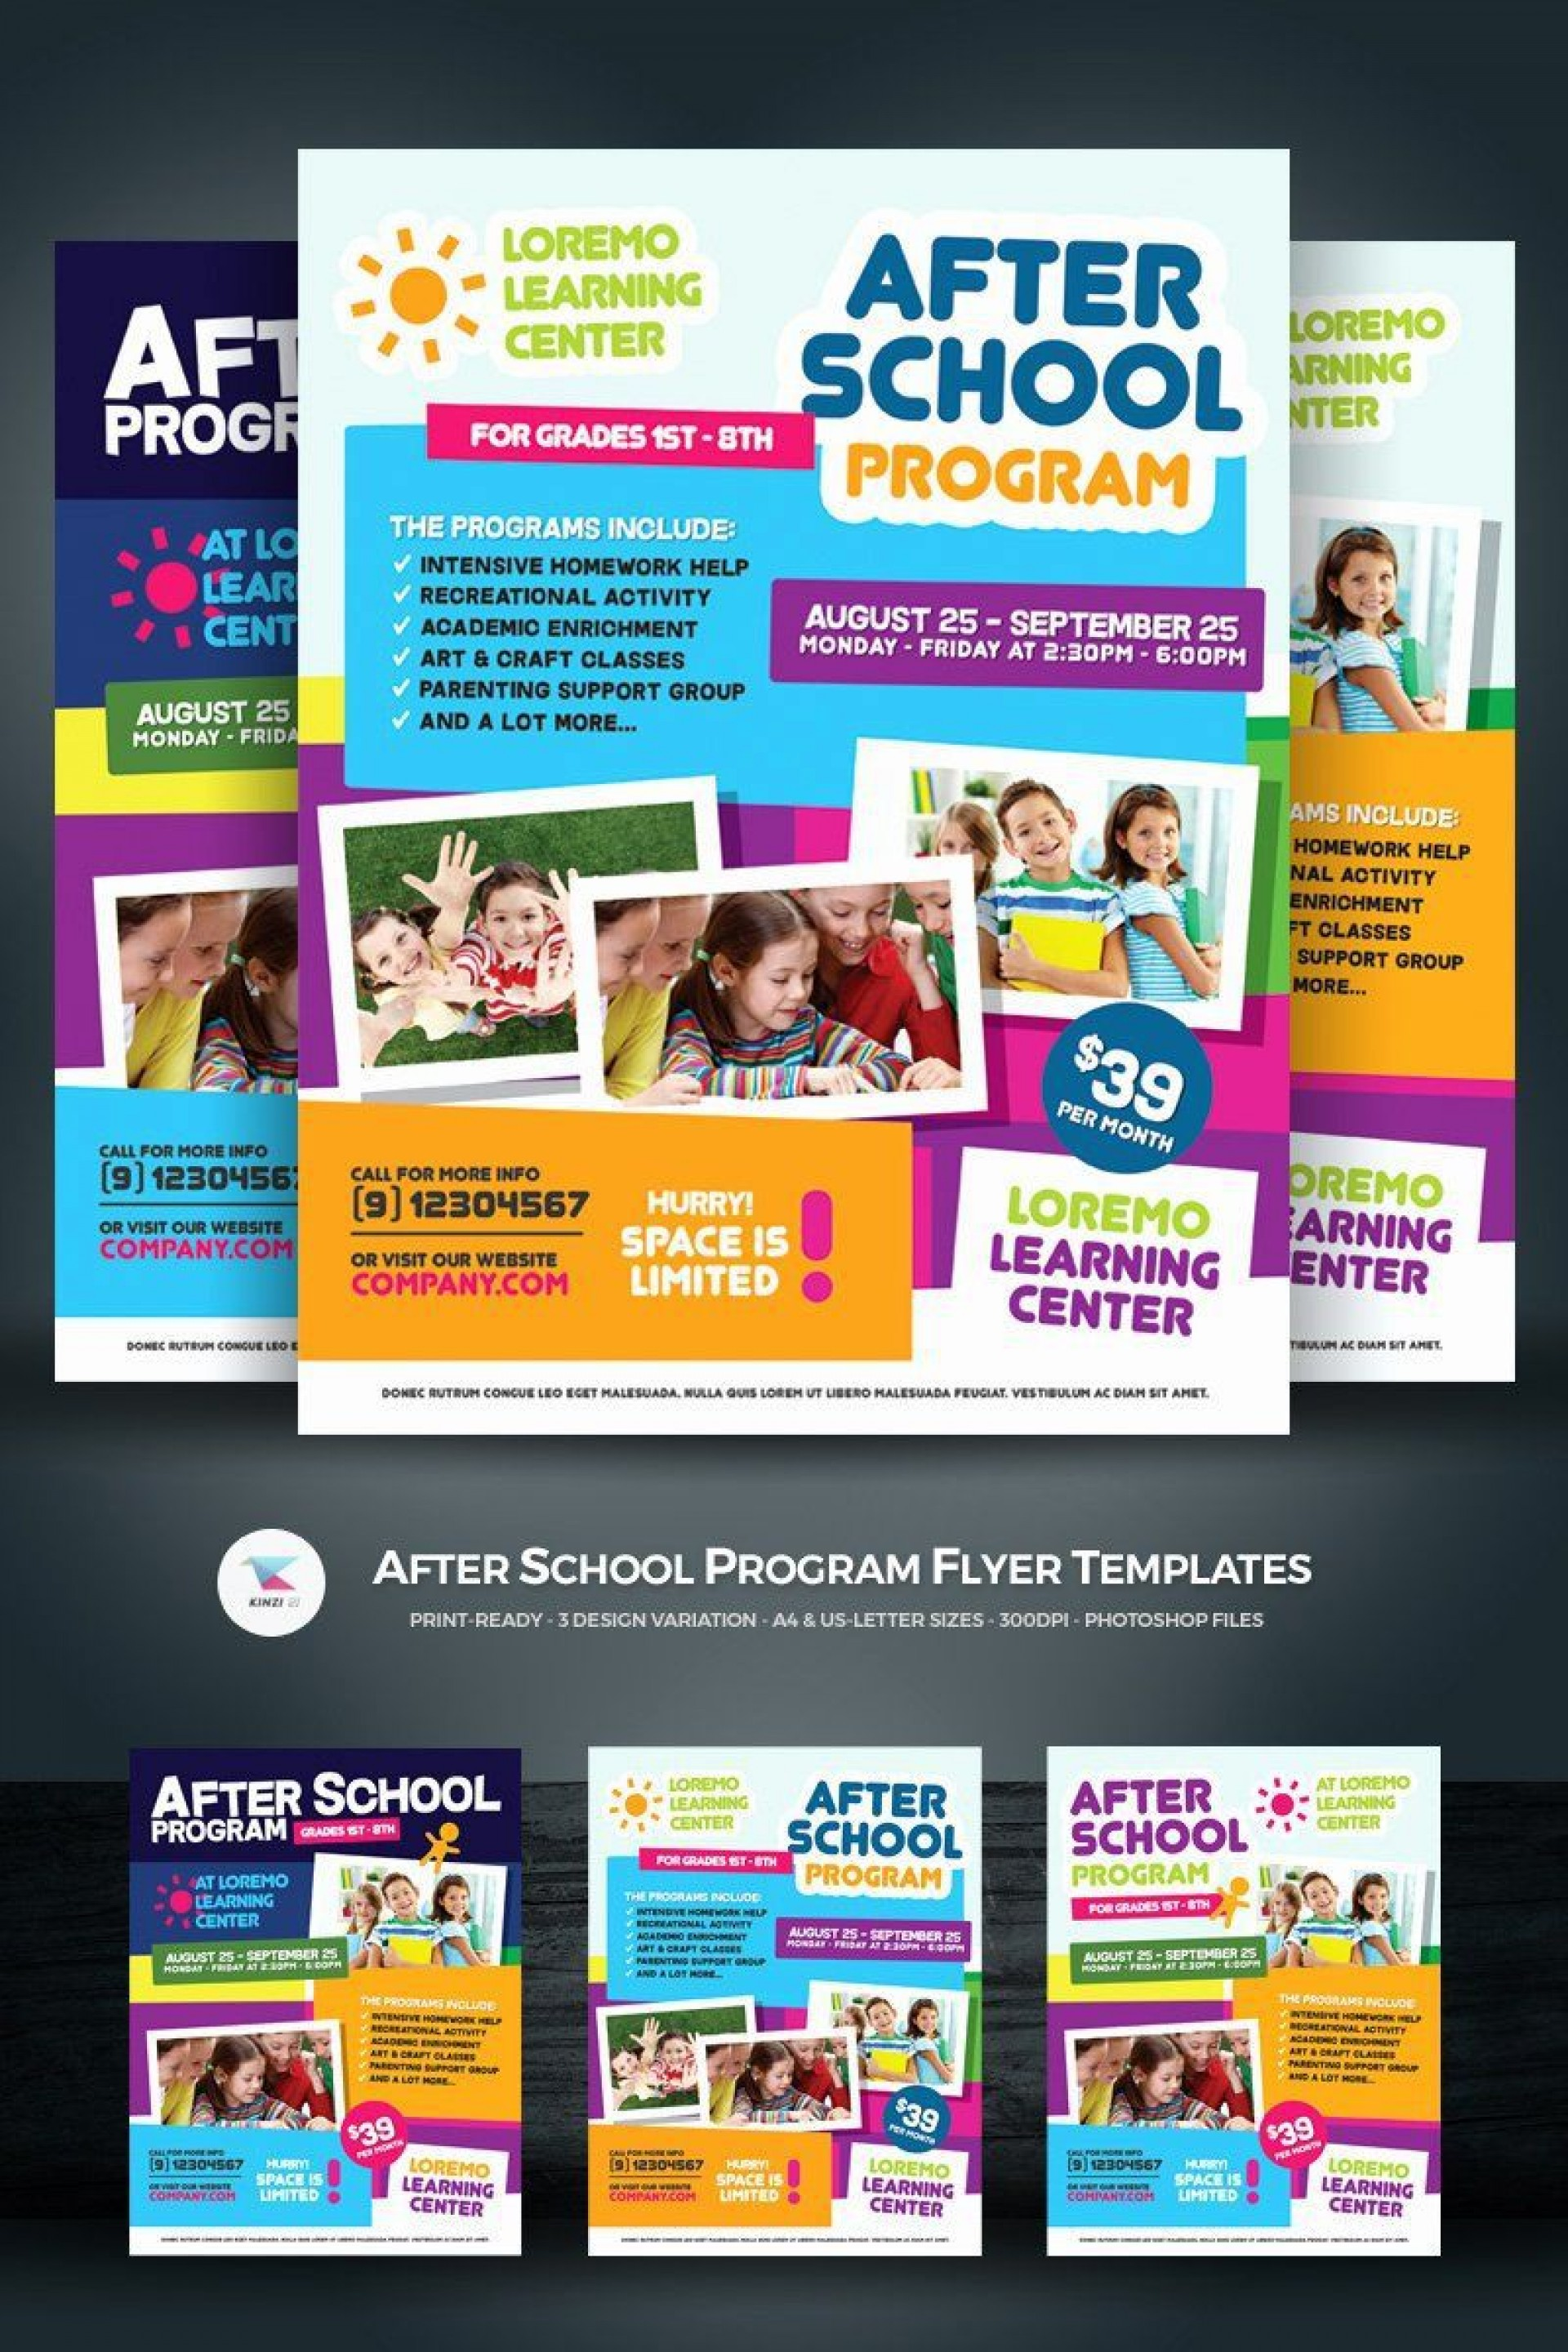 002 Impressive Free After School Flyer Template Image  Templates1920